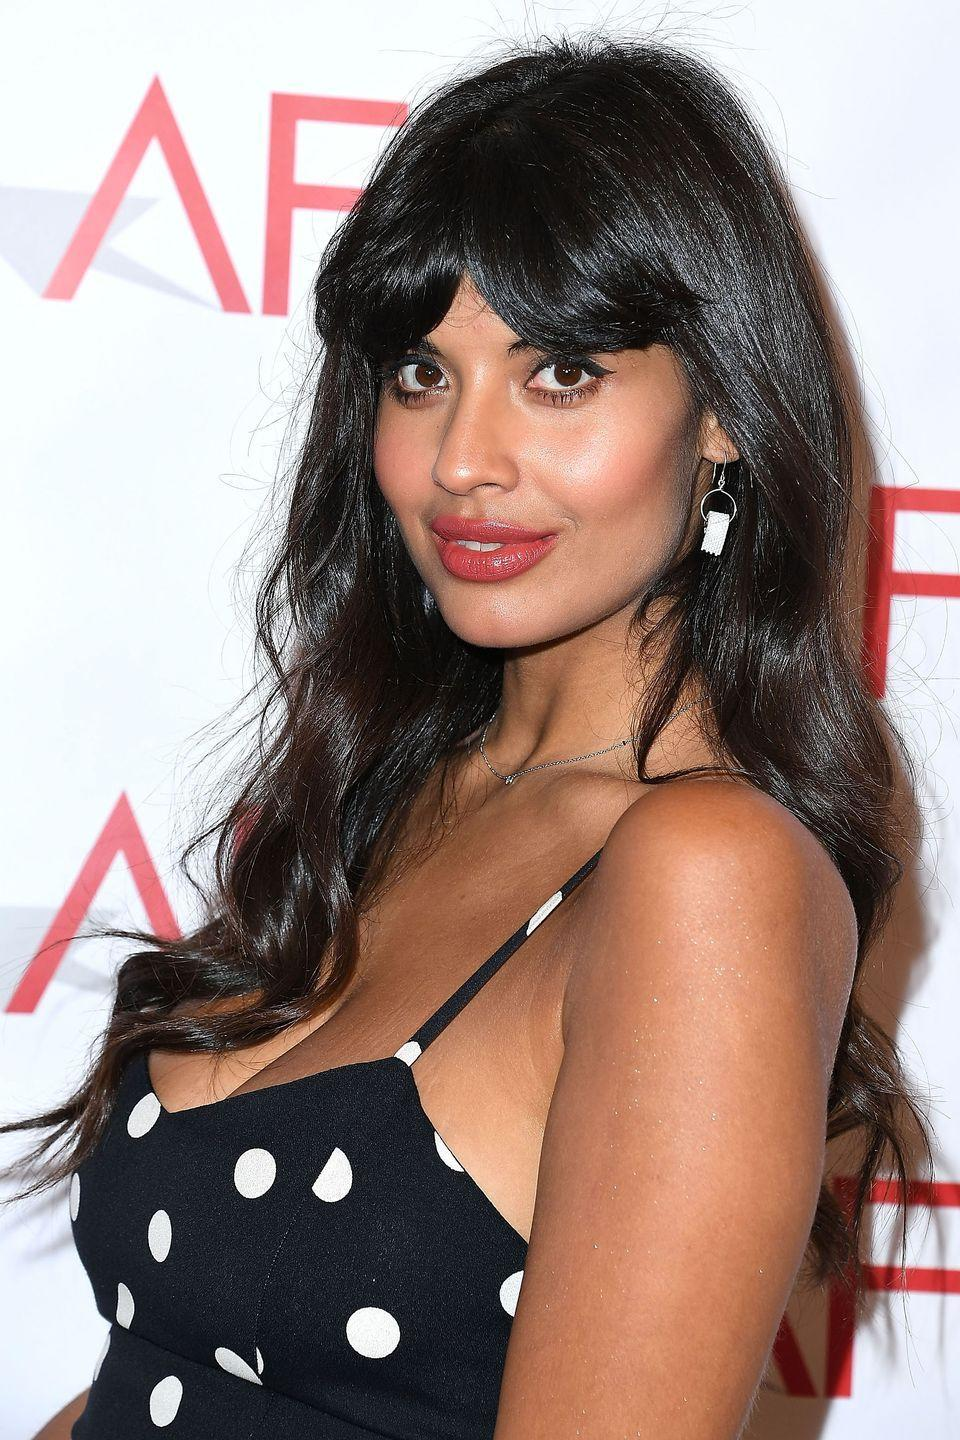 <p>Jameela Jamil's thick bangs are slightly parted in the middle, revealing a tiny bit of forehead but still allowing for that adorable blunt-bangs look.</p>